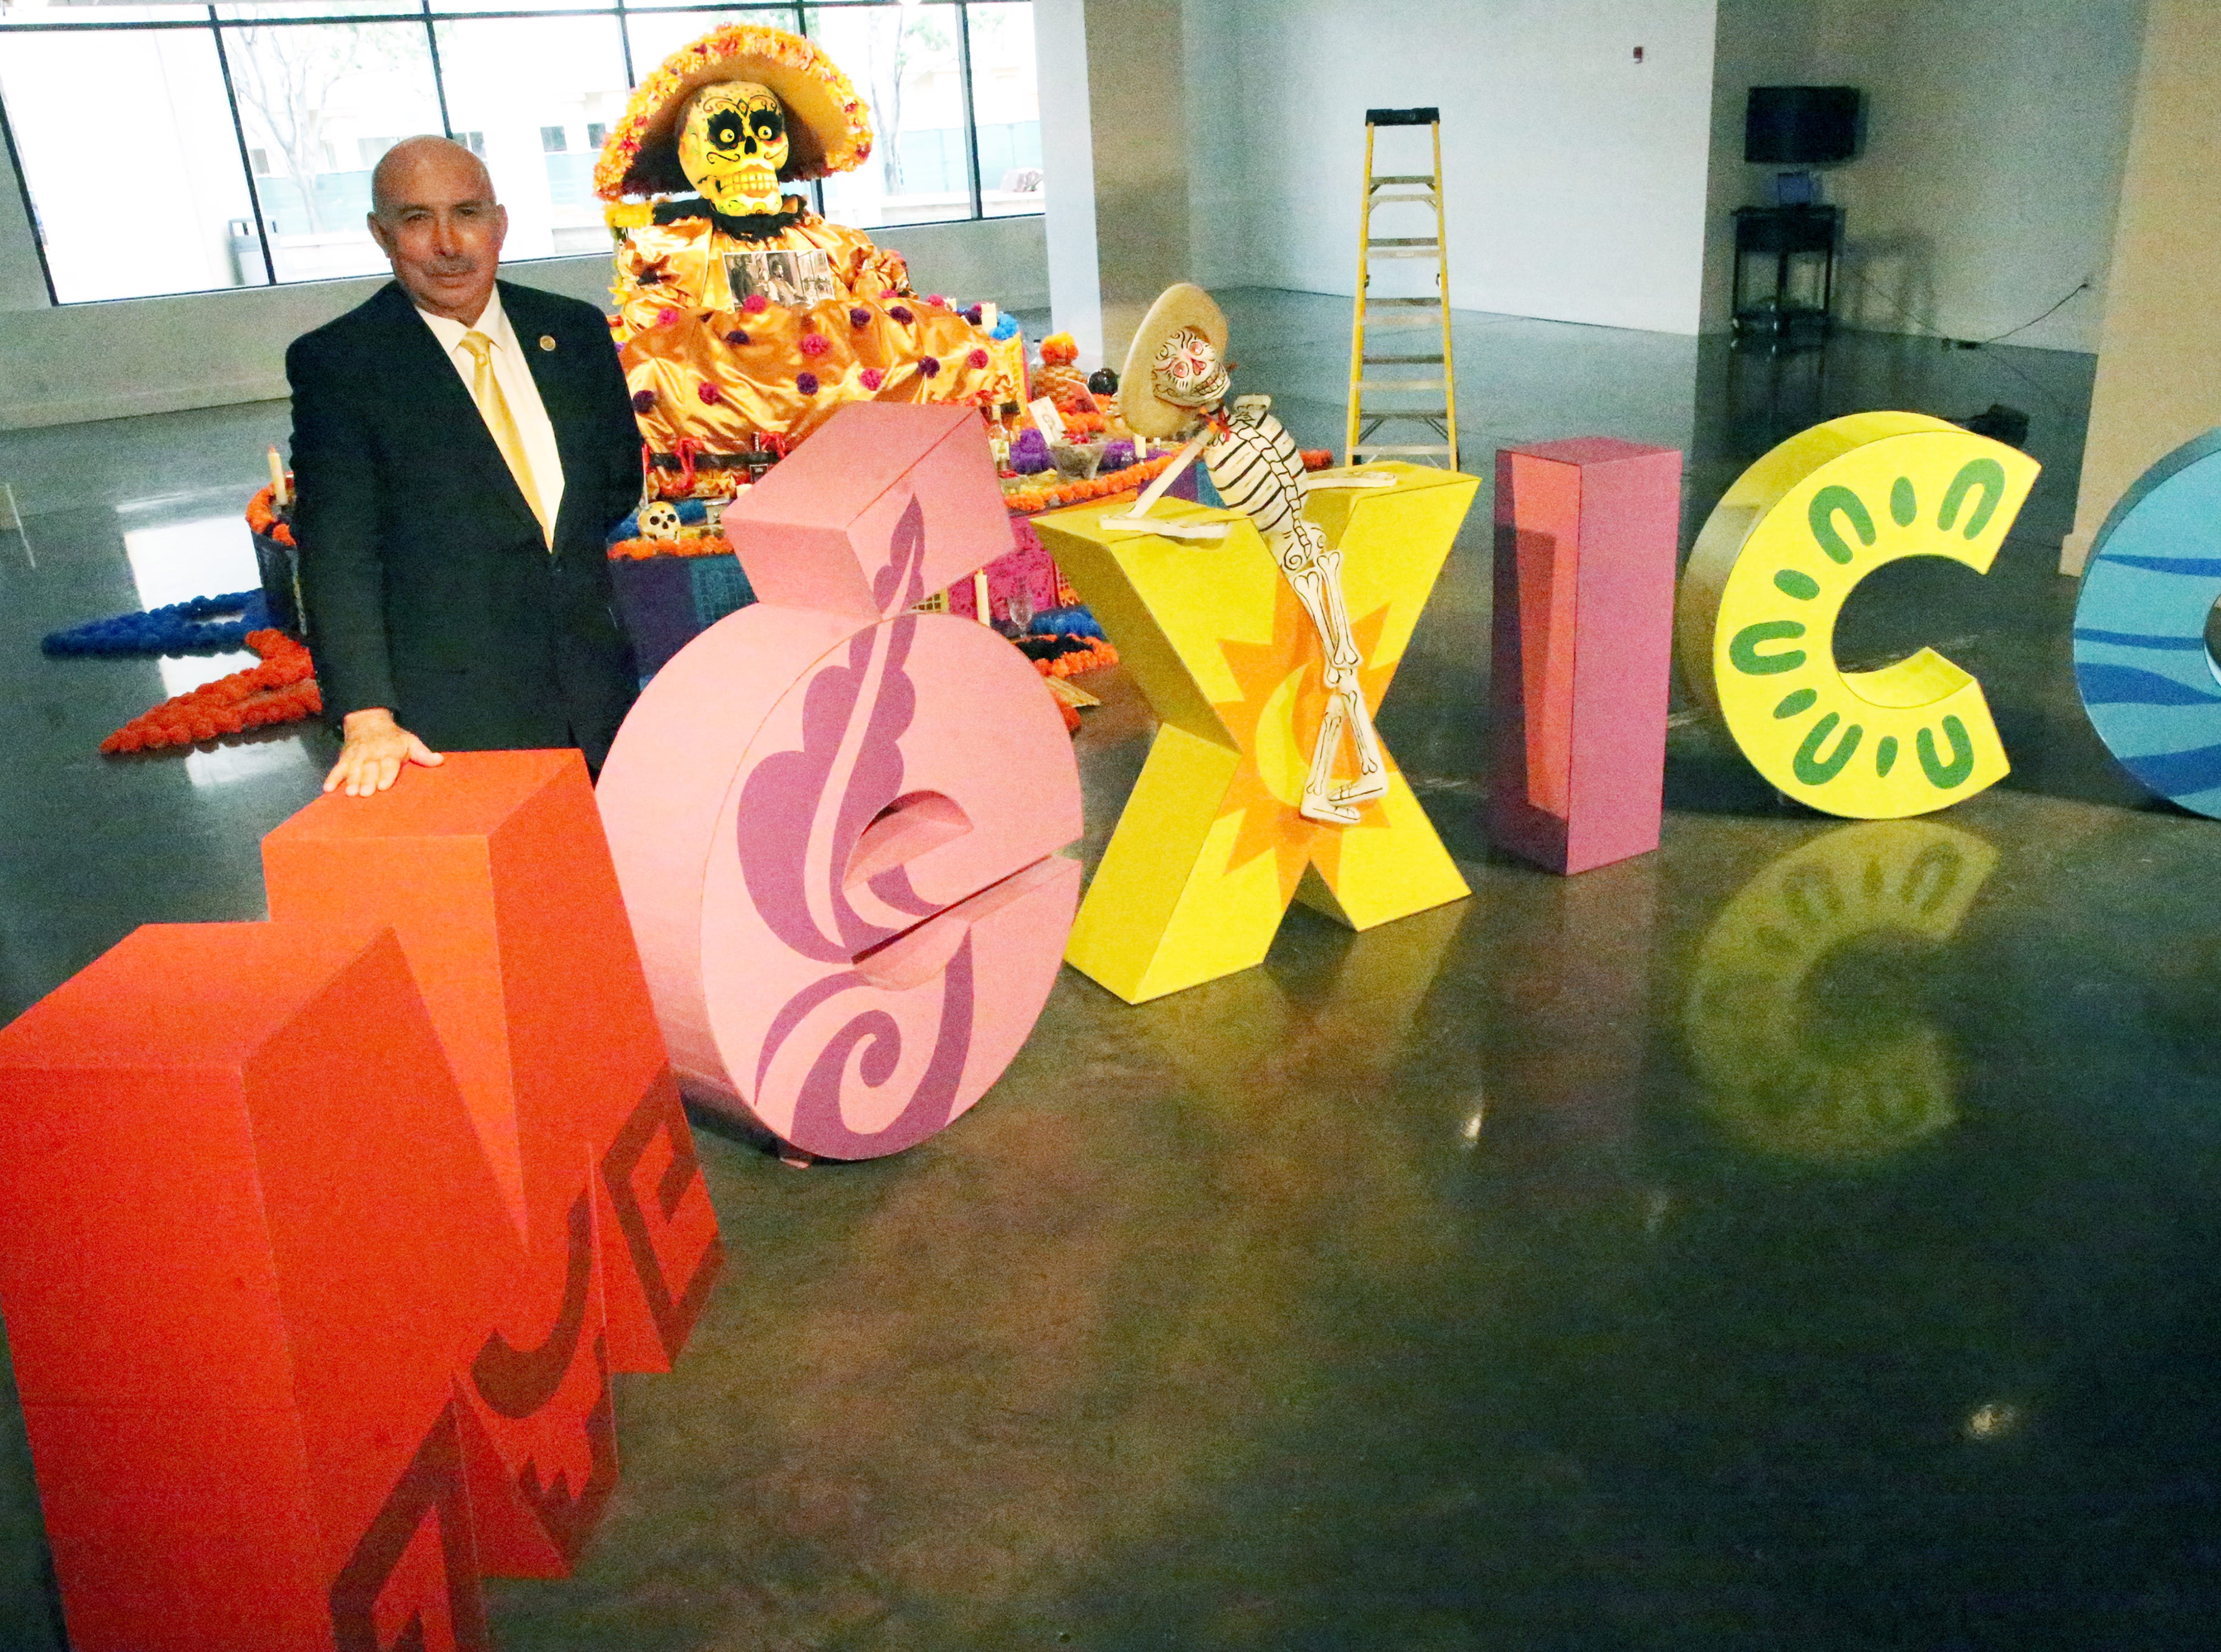 Juan C. Acereto, Consul for Commercial and Economic Affairs for the Consul General of Mexico in El Paso went to the El Paso Museum of Art Wednesday to take a peek at a Dia De Los Muertos altar dedicated to  Mexican artist Jose Guadalupe Posada in anticipation of Thursday's opening reception. Posada, who died in 1913 was an illuststrator who had an influence on many Latin American artists. The alter, which features examples of Posada's work spread throughout will be officially dedicated Thursday at 6 p.m. Festivities include performances by mariachi and a ballet folklorico groups. Hot chocolate and Day of the Dead bread will be served. The event is open and free to the public. A Day of the Dead altar is constructed at the Museum each year in collaboration with Mexican Consulate. The altar will be on view at the museum through Sunday, November 4th. On Saturday the museum will host a Fiesta de Muertos from 2-5 p.m. which includes a procession around the museum. Visitors are encouraged to wear Day of the Dead costumes and bring along candles, LED lights, flowers and rememberances of loves ones.